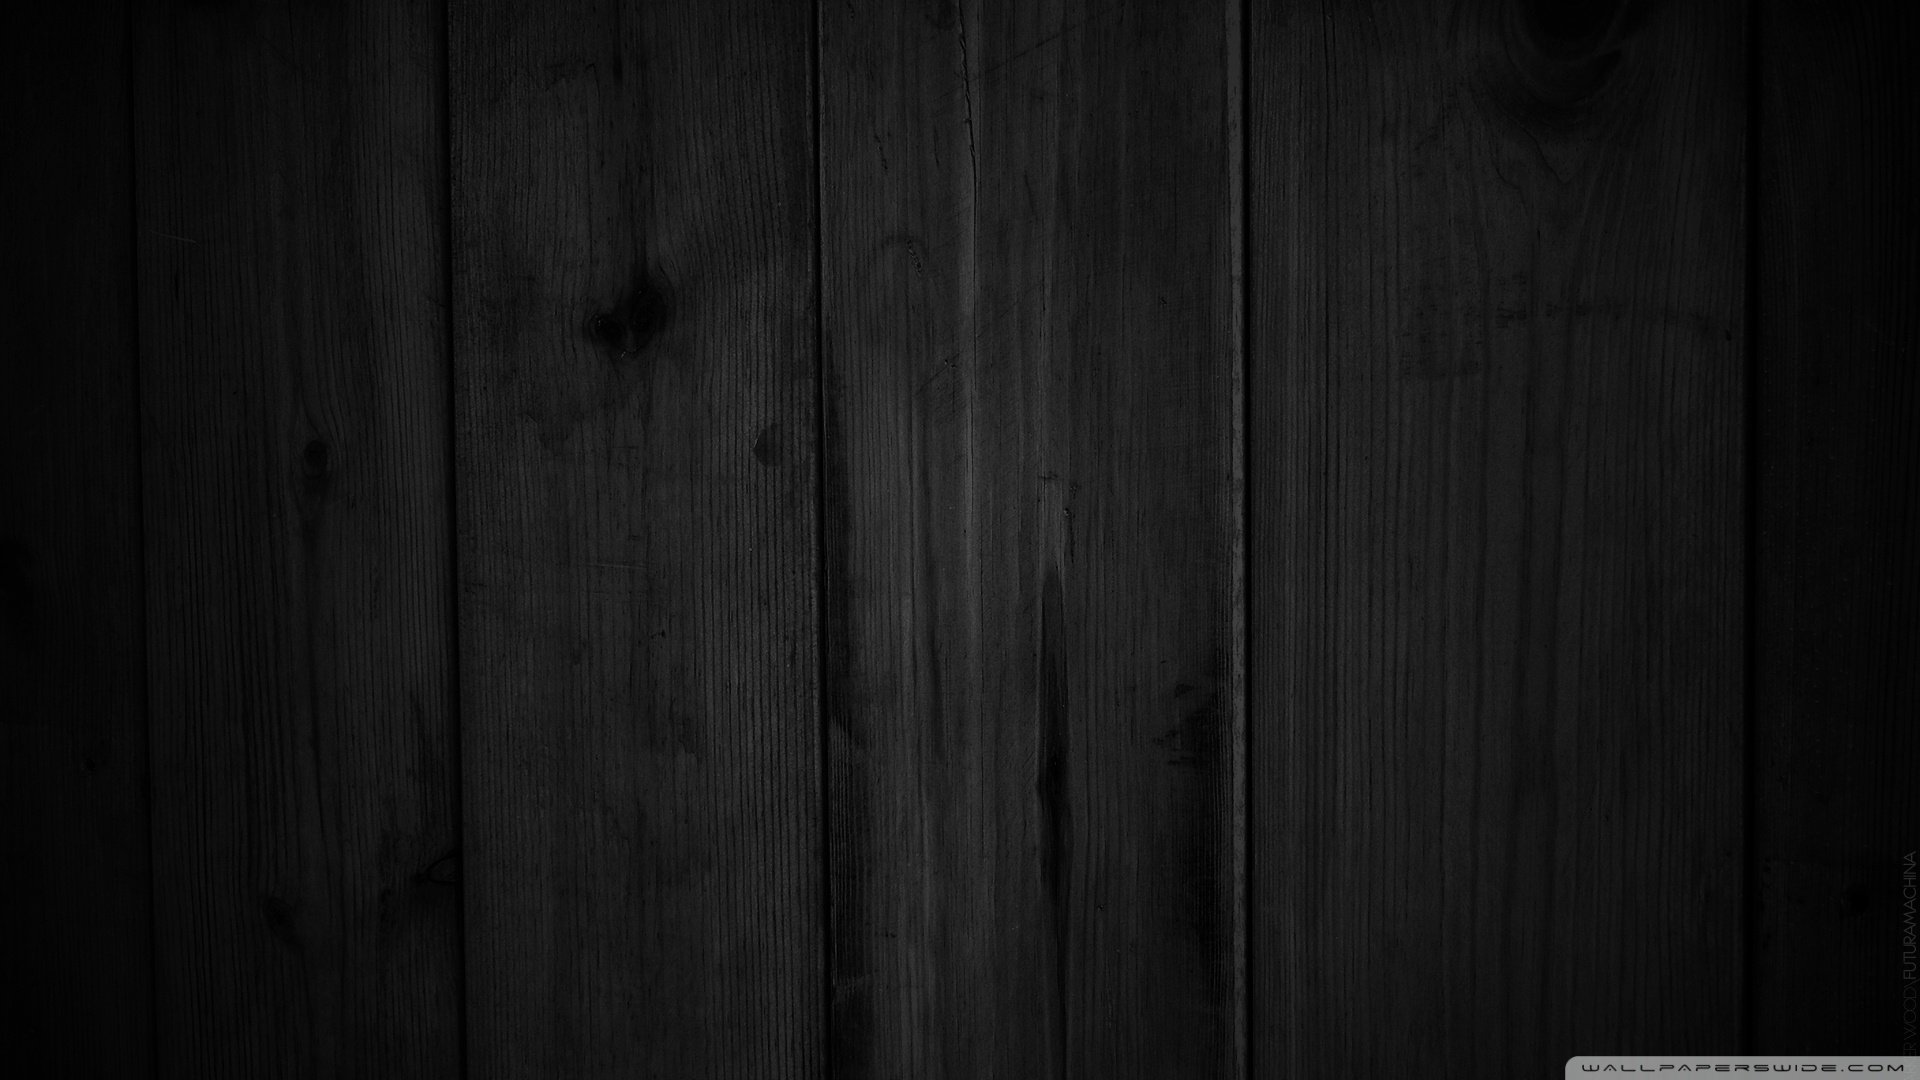 Dark Wood Wall Wallpaper 1920x1080 Dark Wood Wall 1920x1080